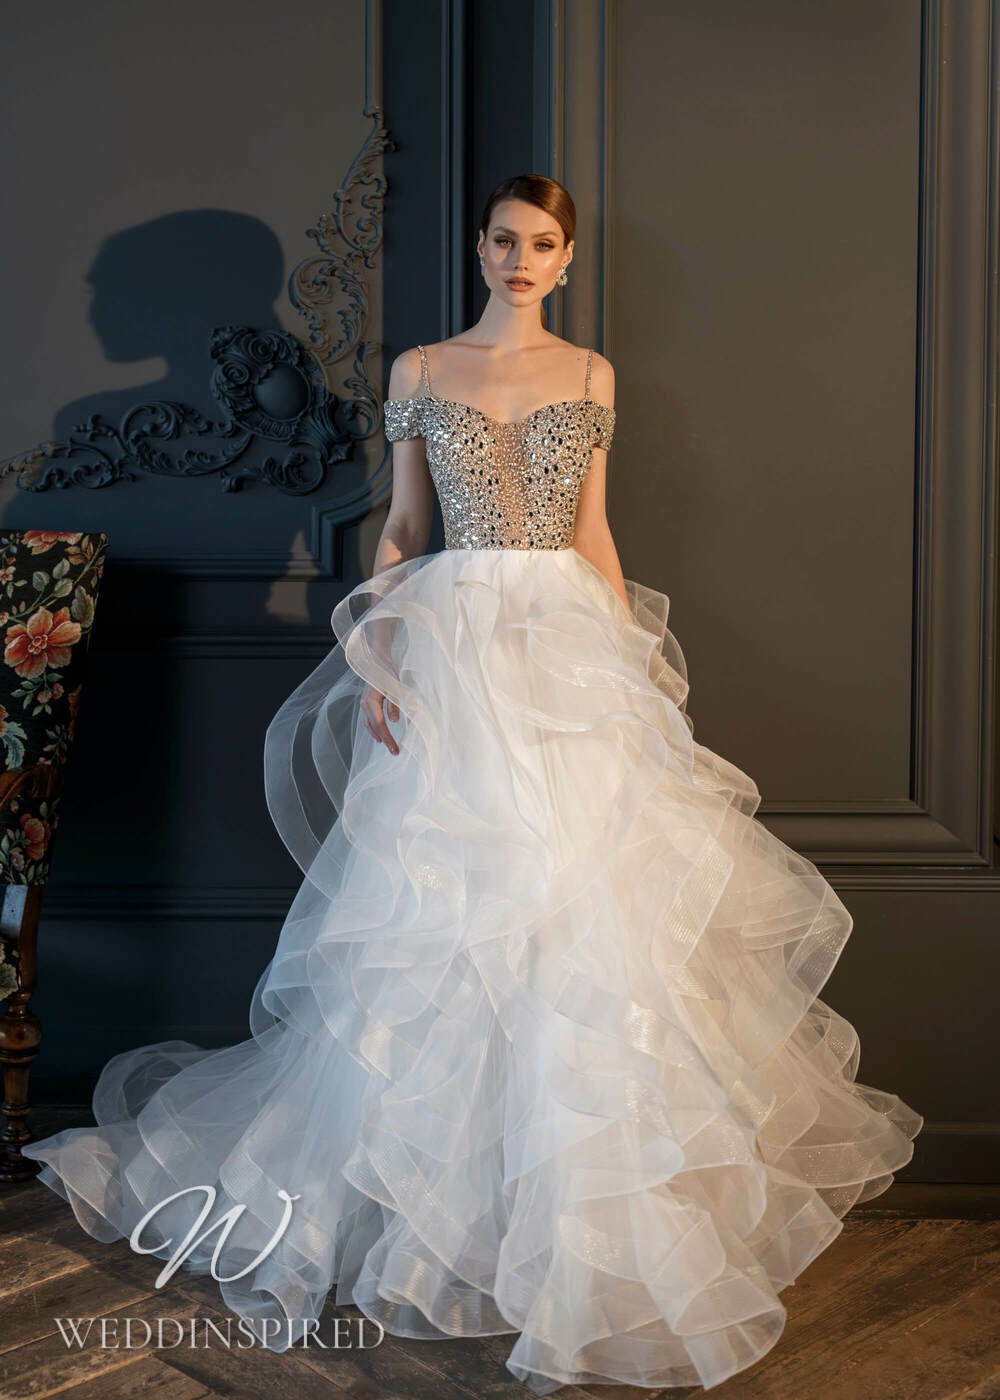 An Essential by Lussano 2021 sparkly tulle princess wedding dress with a ruffle skirt